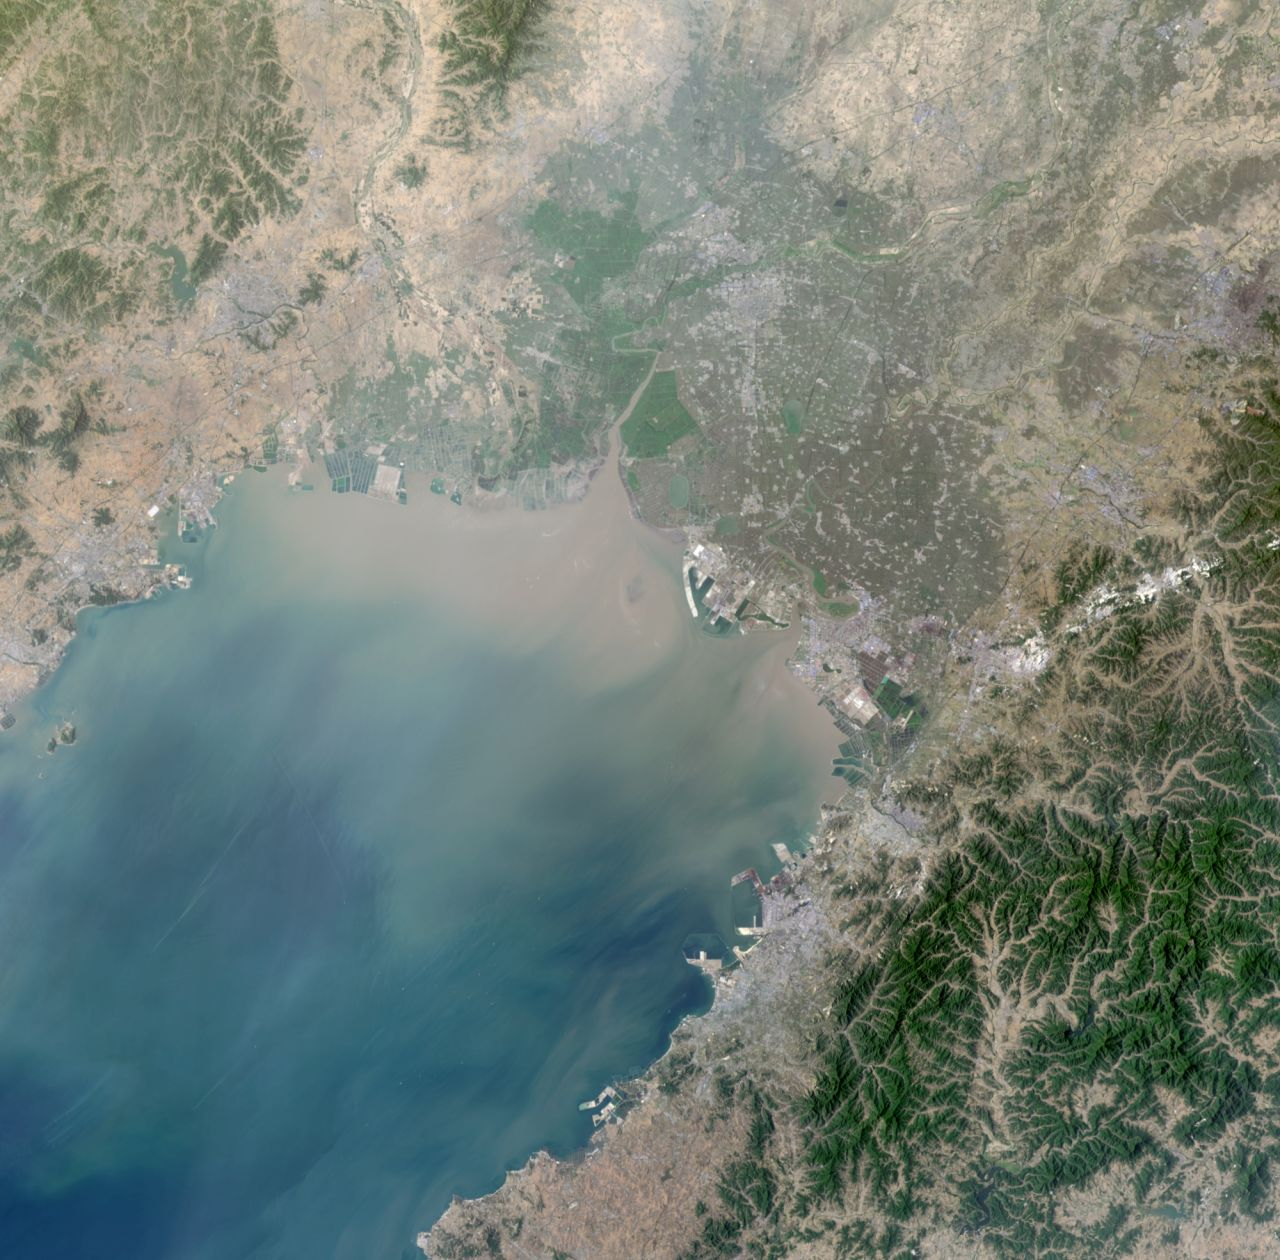 Liaoning Province, Northeast China, imaged by the Tiangong-2 space lab from orbit on June 1, 2018.